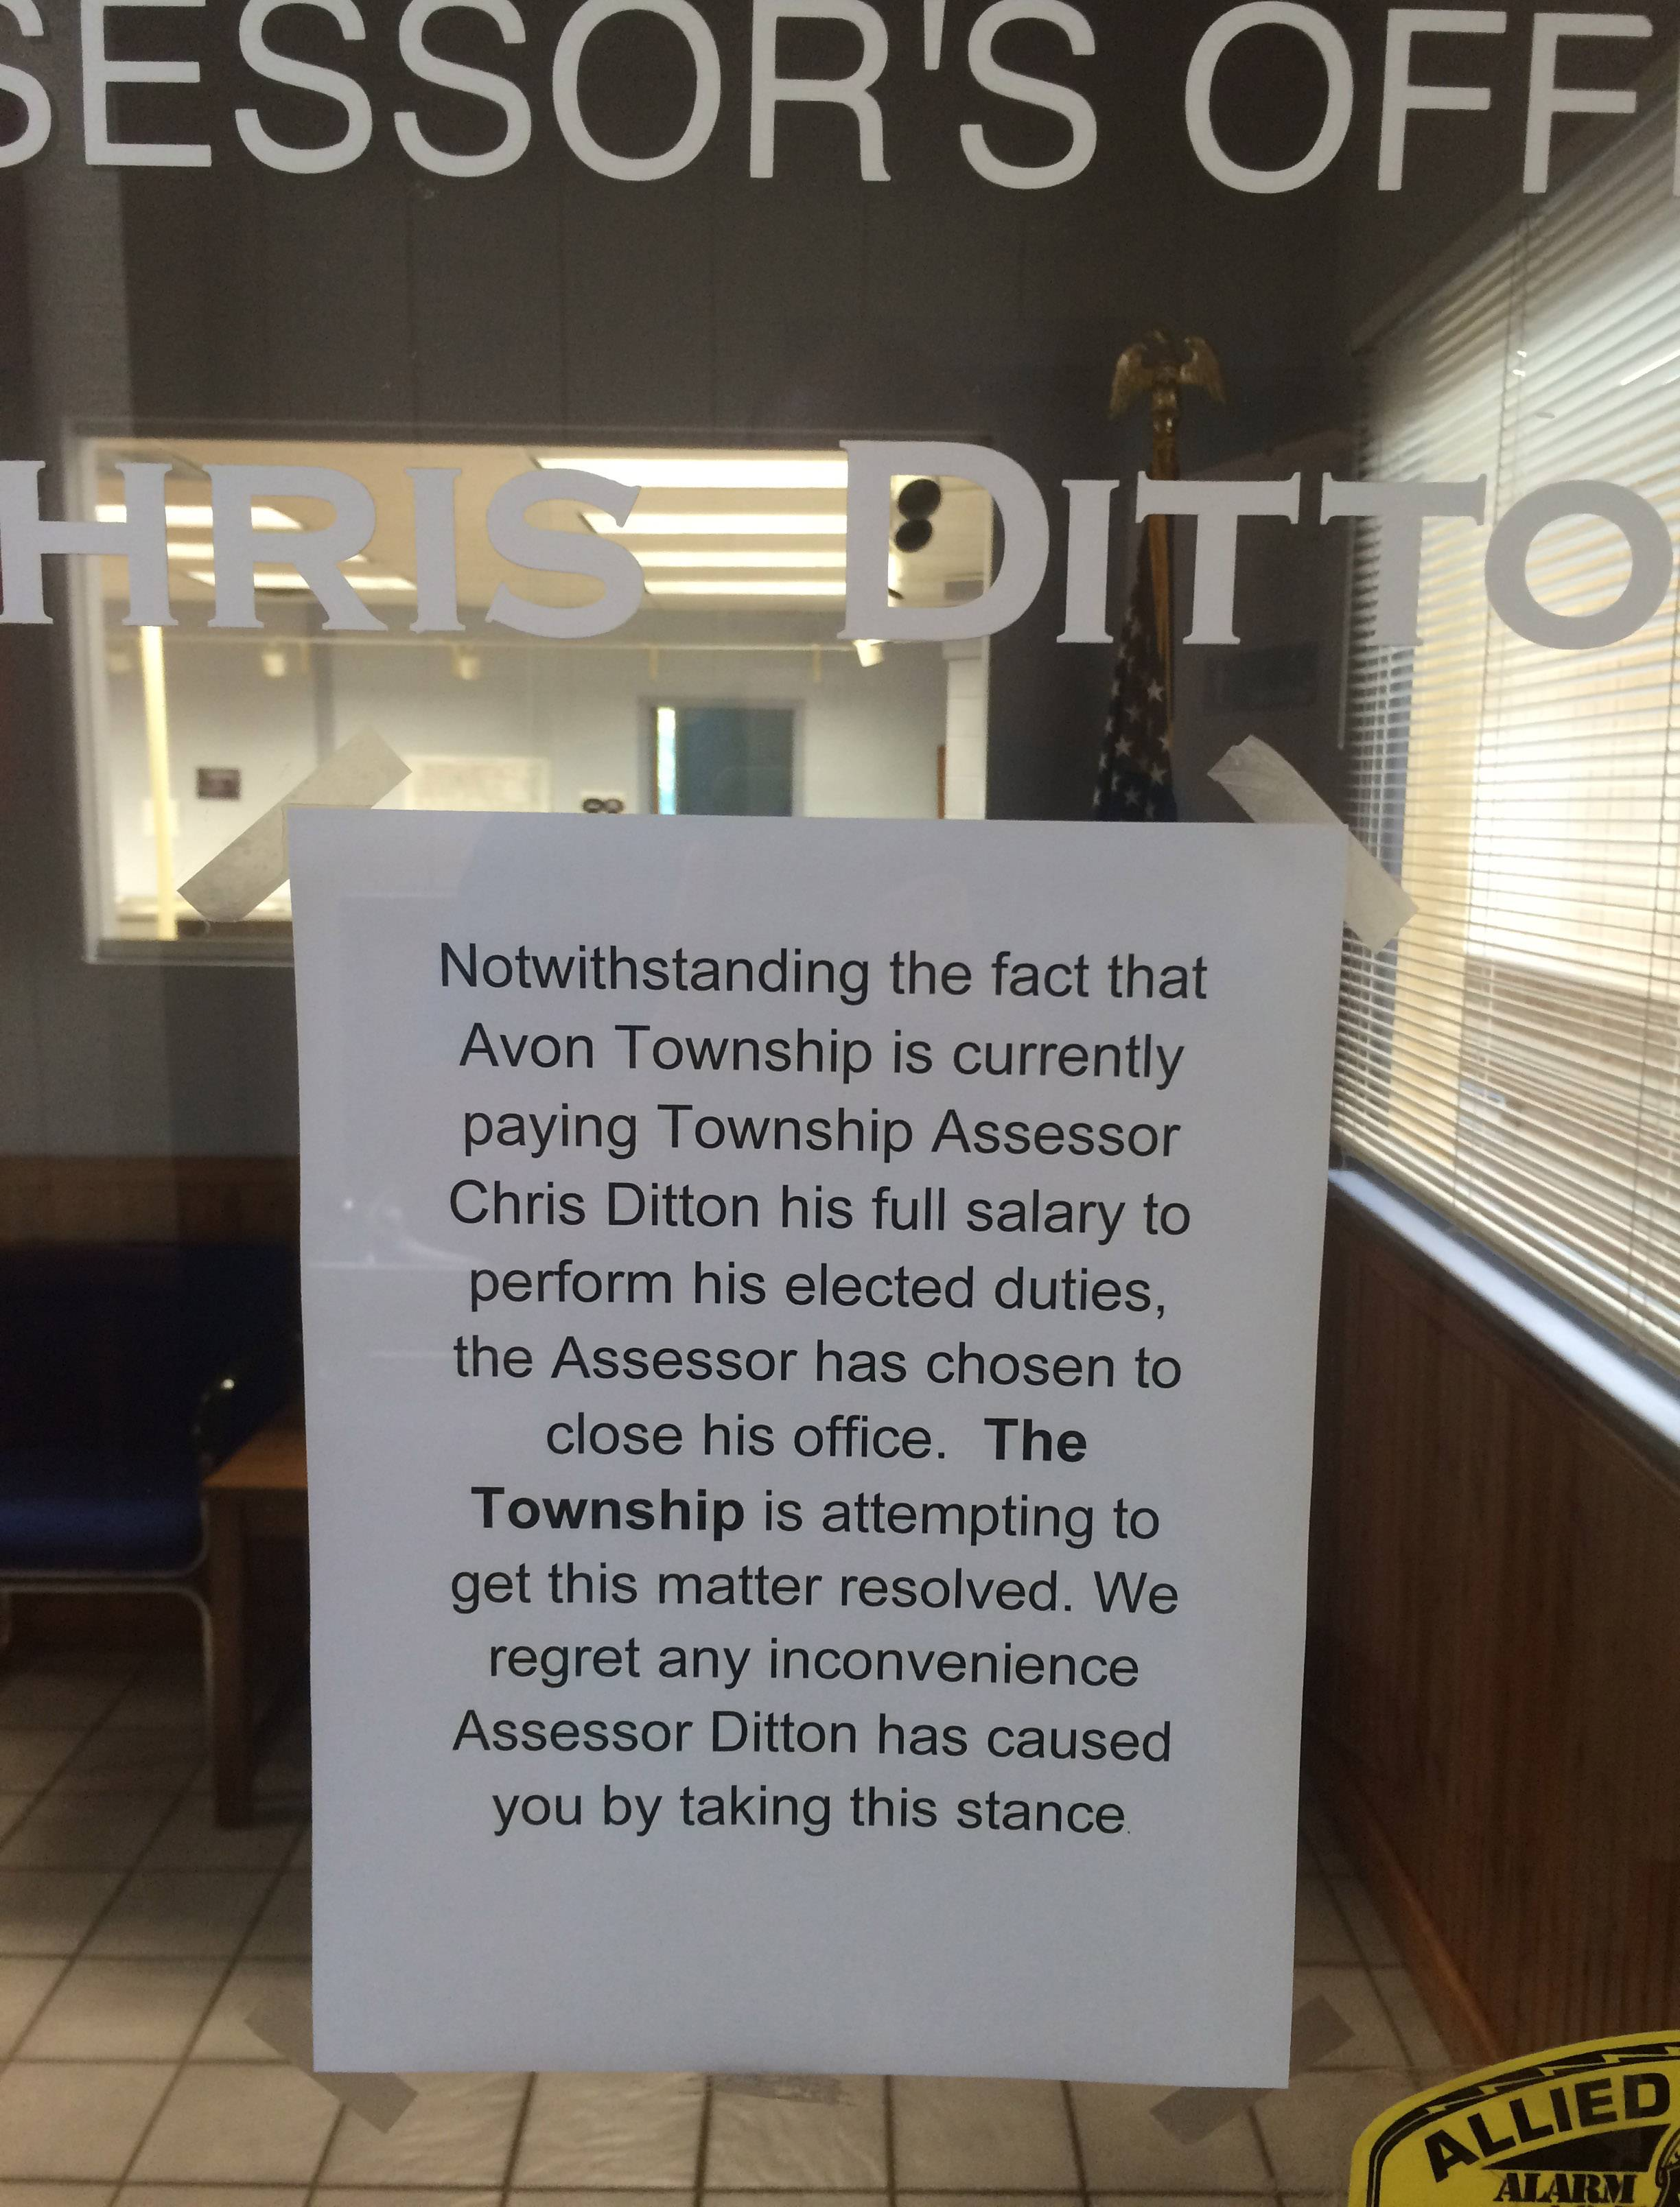 A budget dispute has resulted in the closure of the Avon Township assessor's office.